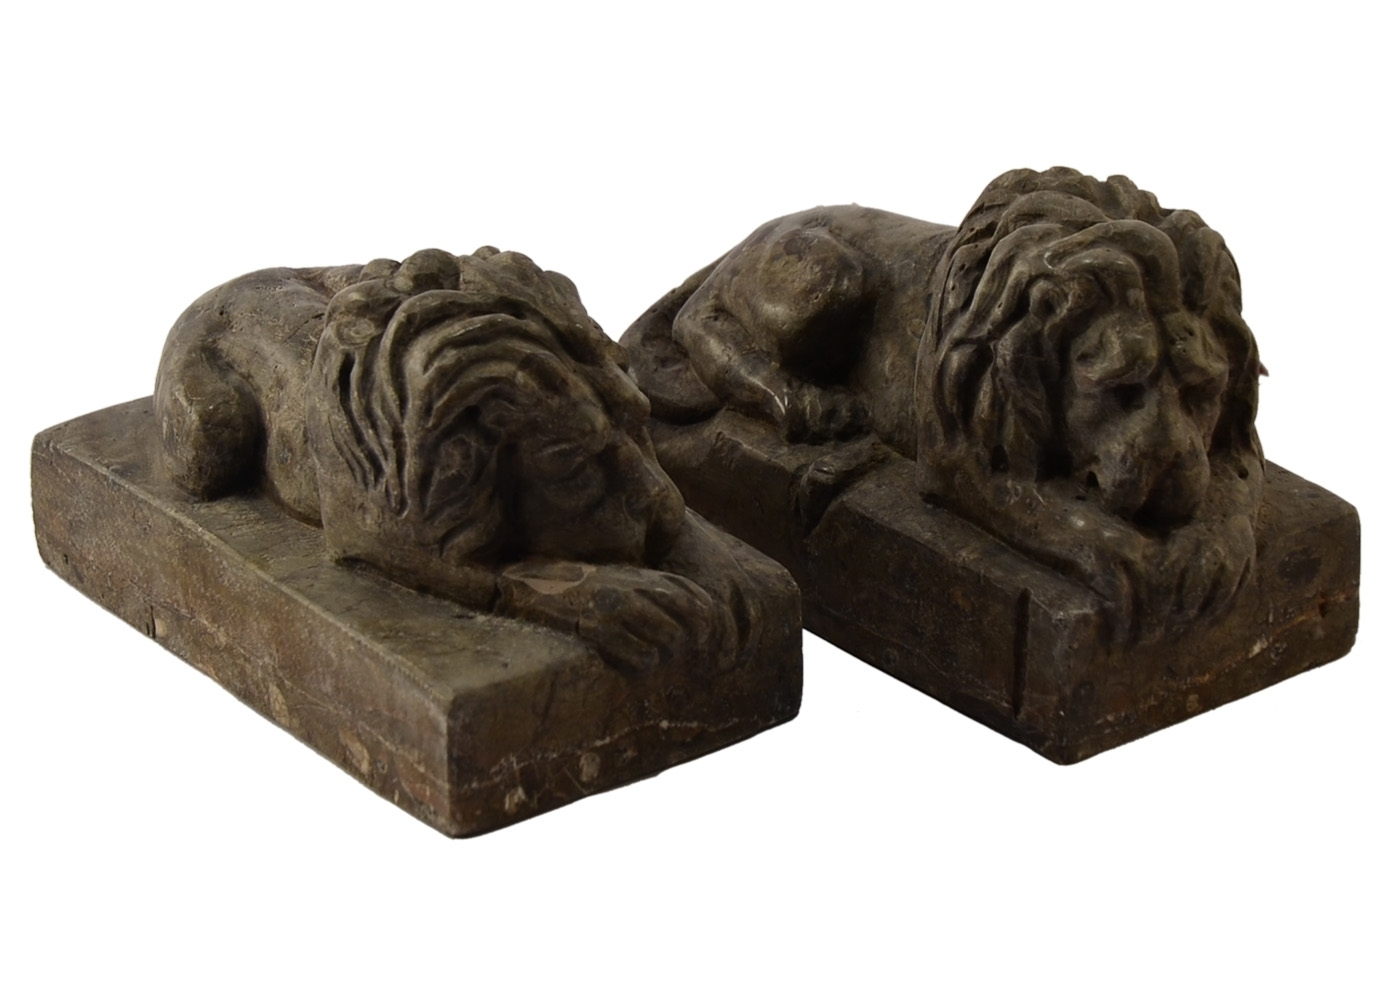 Buy Two Lions Paperweight Sculpture Table 17457760 | Italy2Us.com